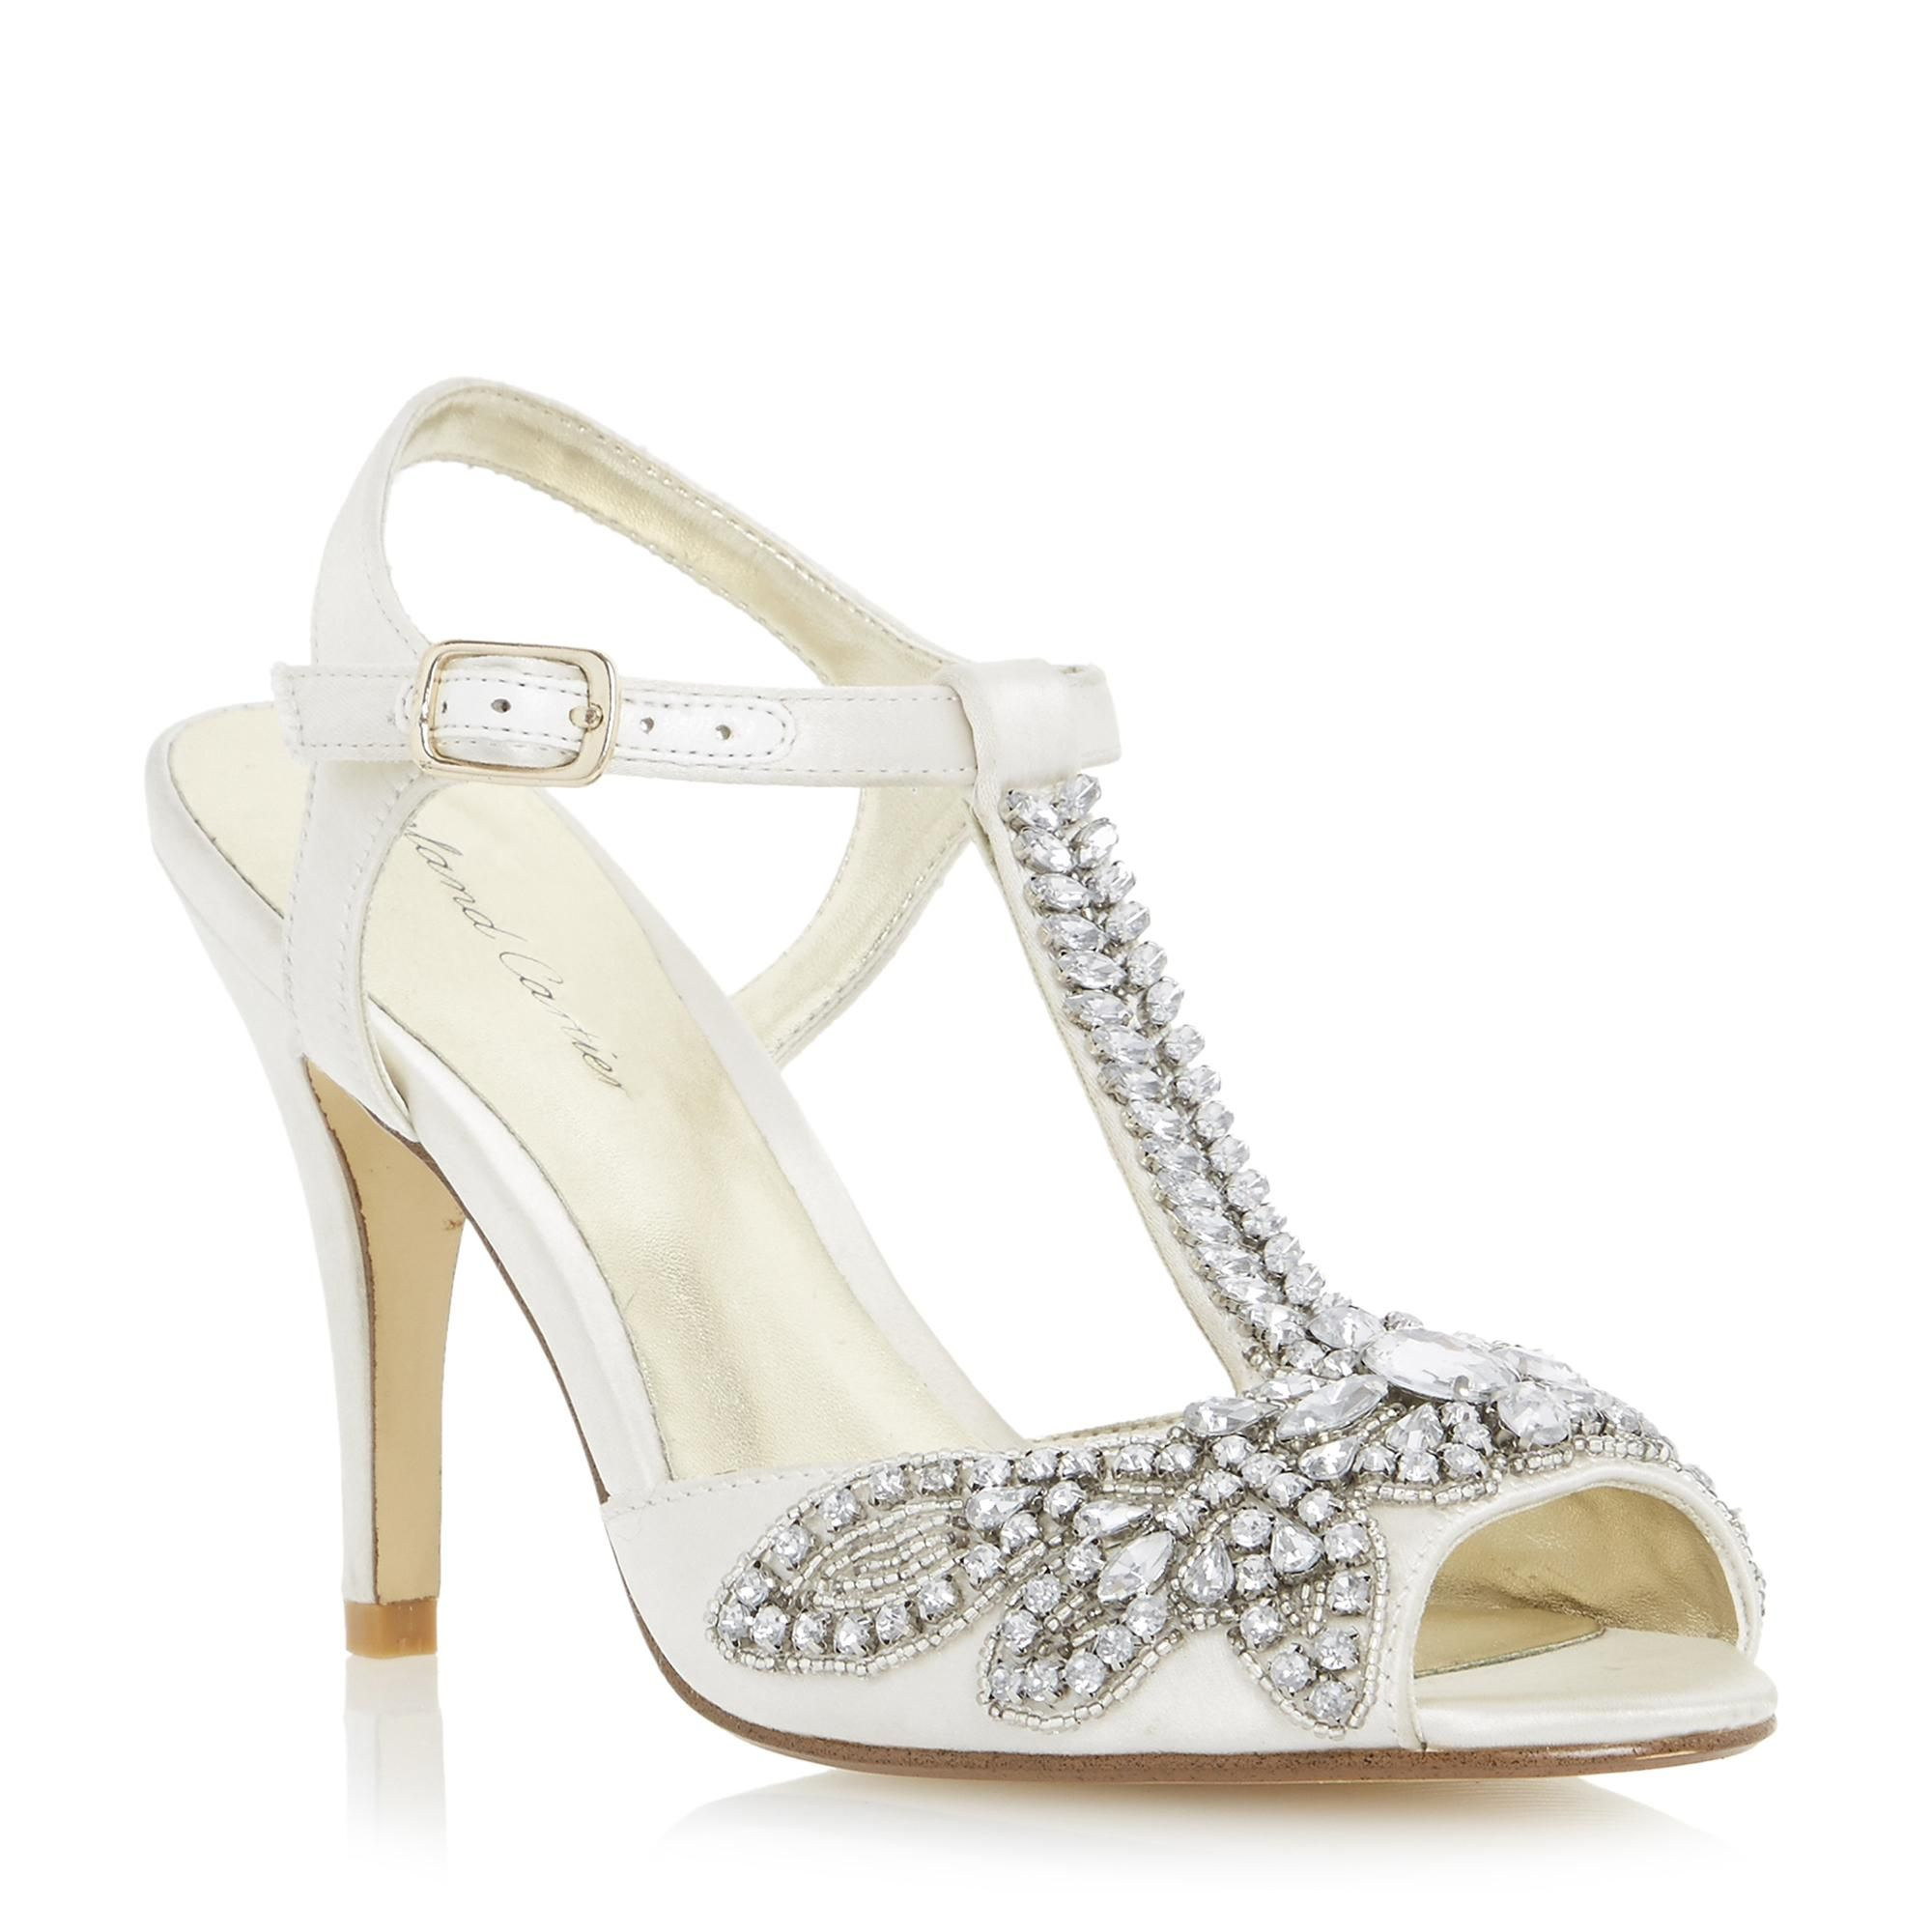 Roland Cartier Ladies MONTORI - Embellished Jewel Heeled Sandal - ivory  6c3809f664d4